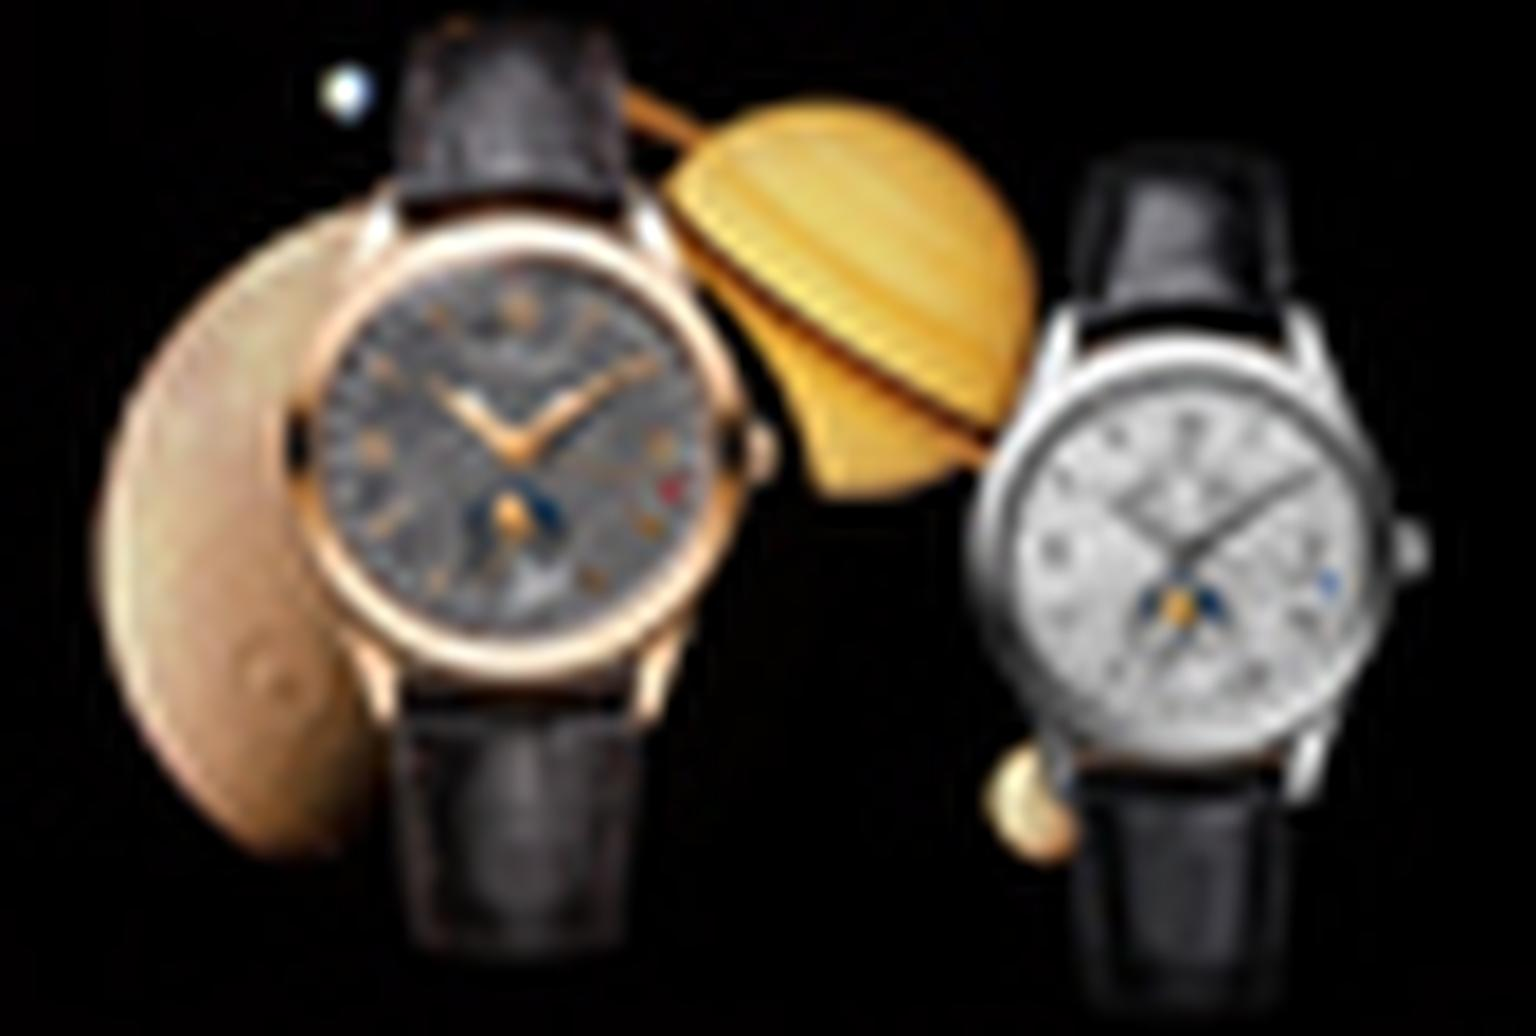 Jeager Lecoultre Master Calendar watches